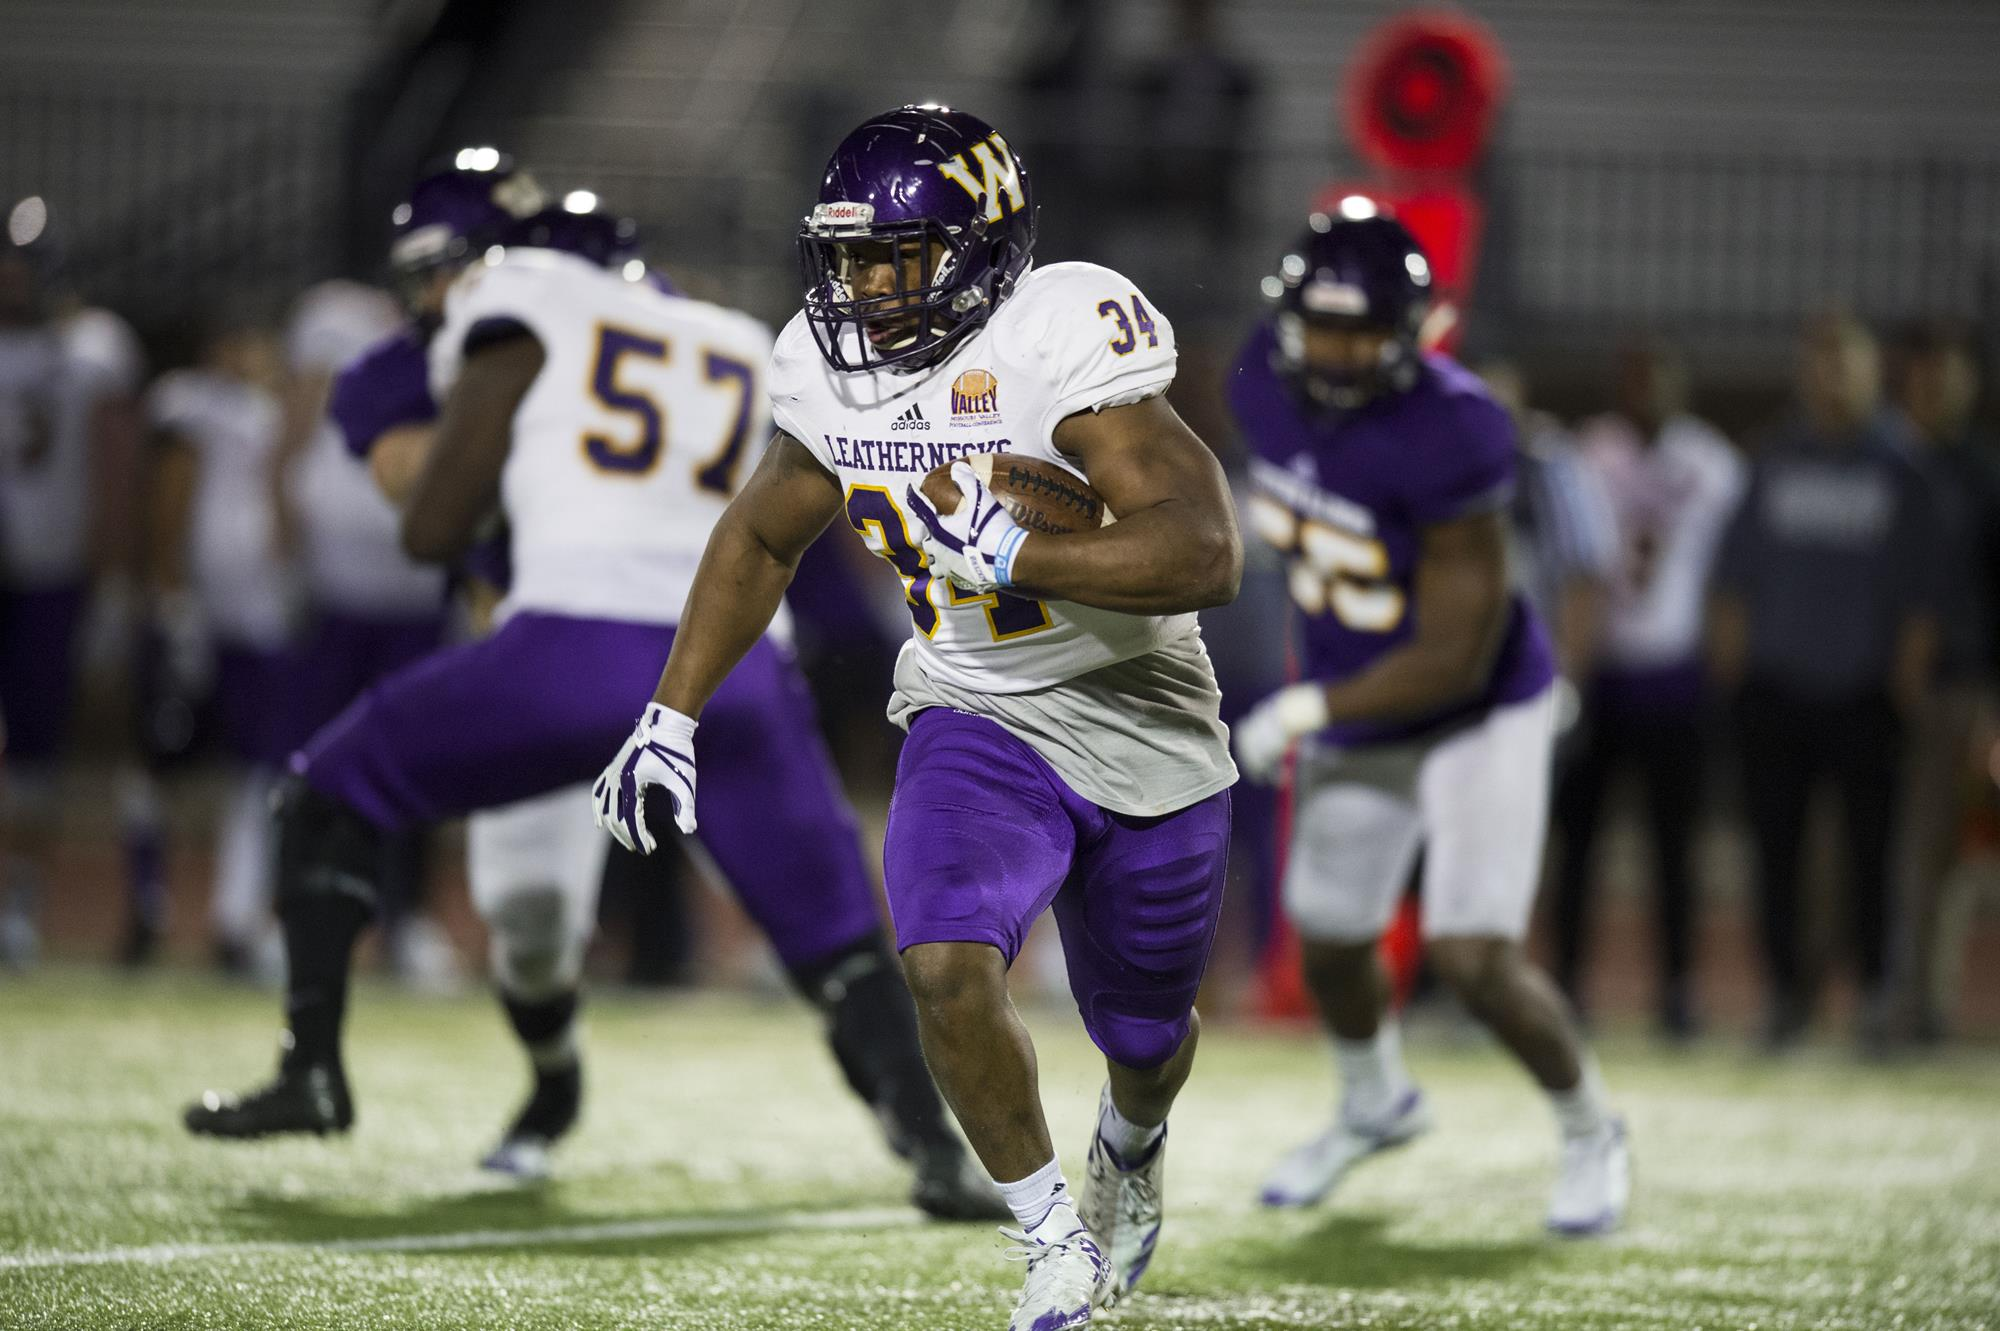 2bea60f2f Offense Shrugs off Late Rally for Spring Game Victory - Western ...